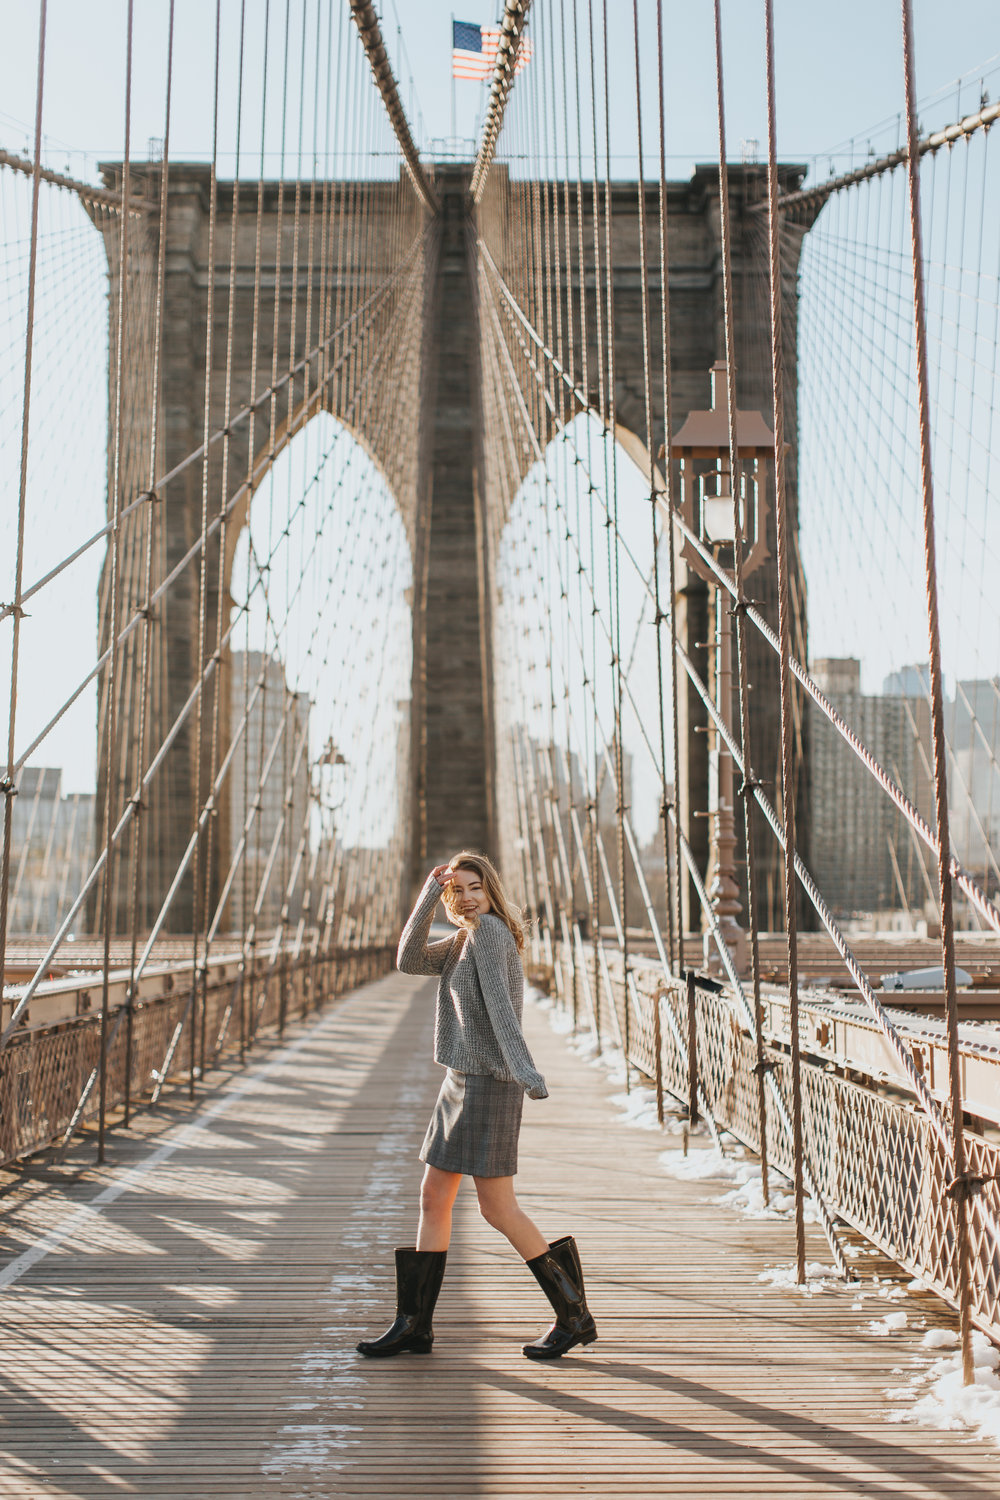 New York City portrait photographer, New york city wedding photographer, Brooklyn bridge portrait, brooklyn bridge photos, brooklyn bridge sunrise session, Brooklyn bridge inspiration514.JPG